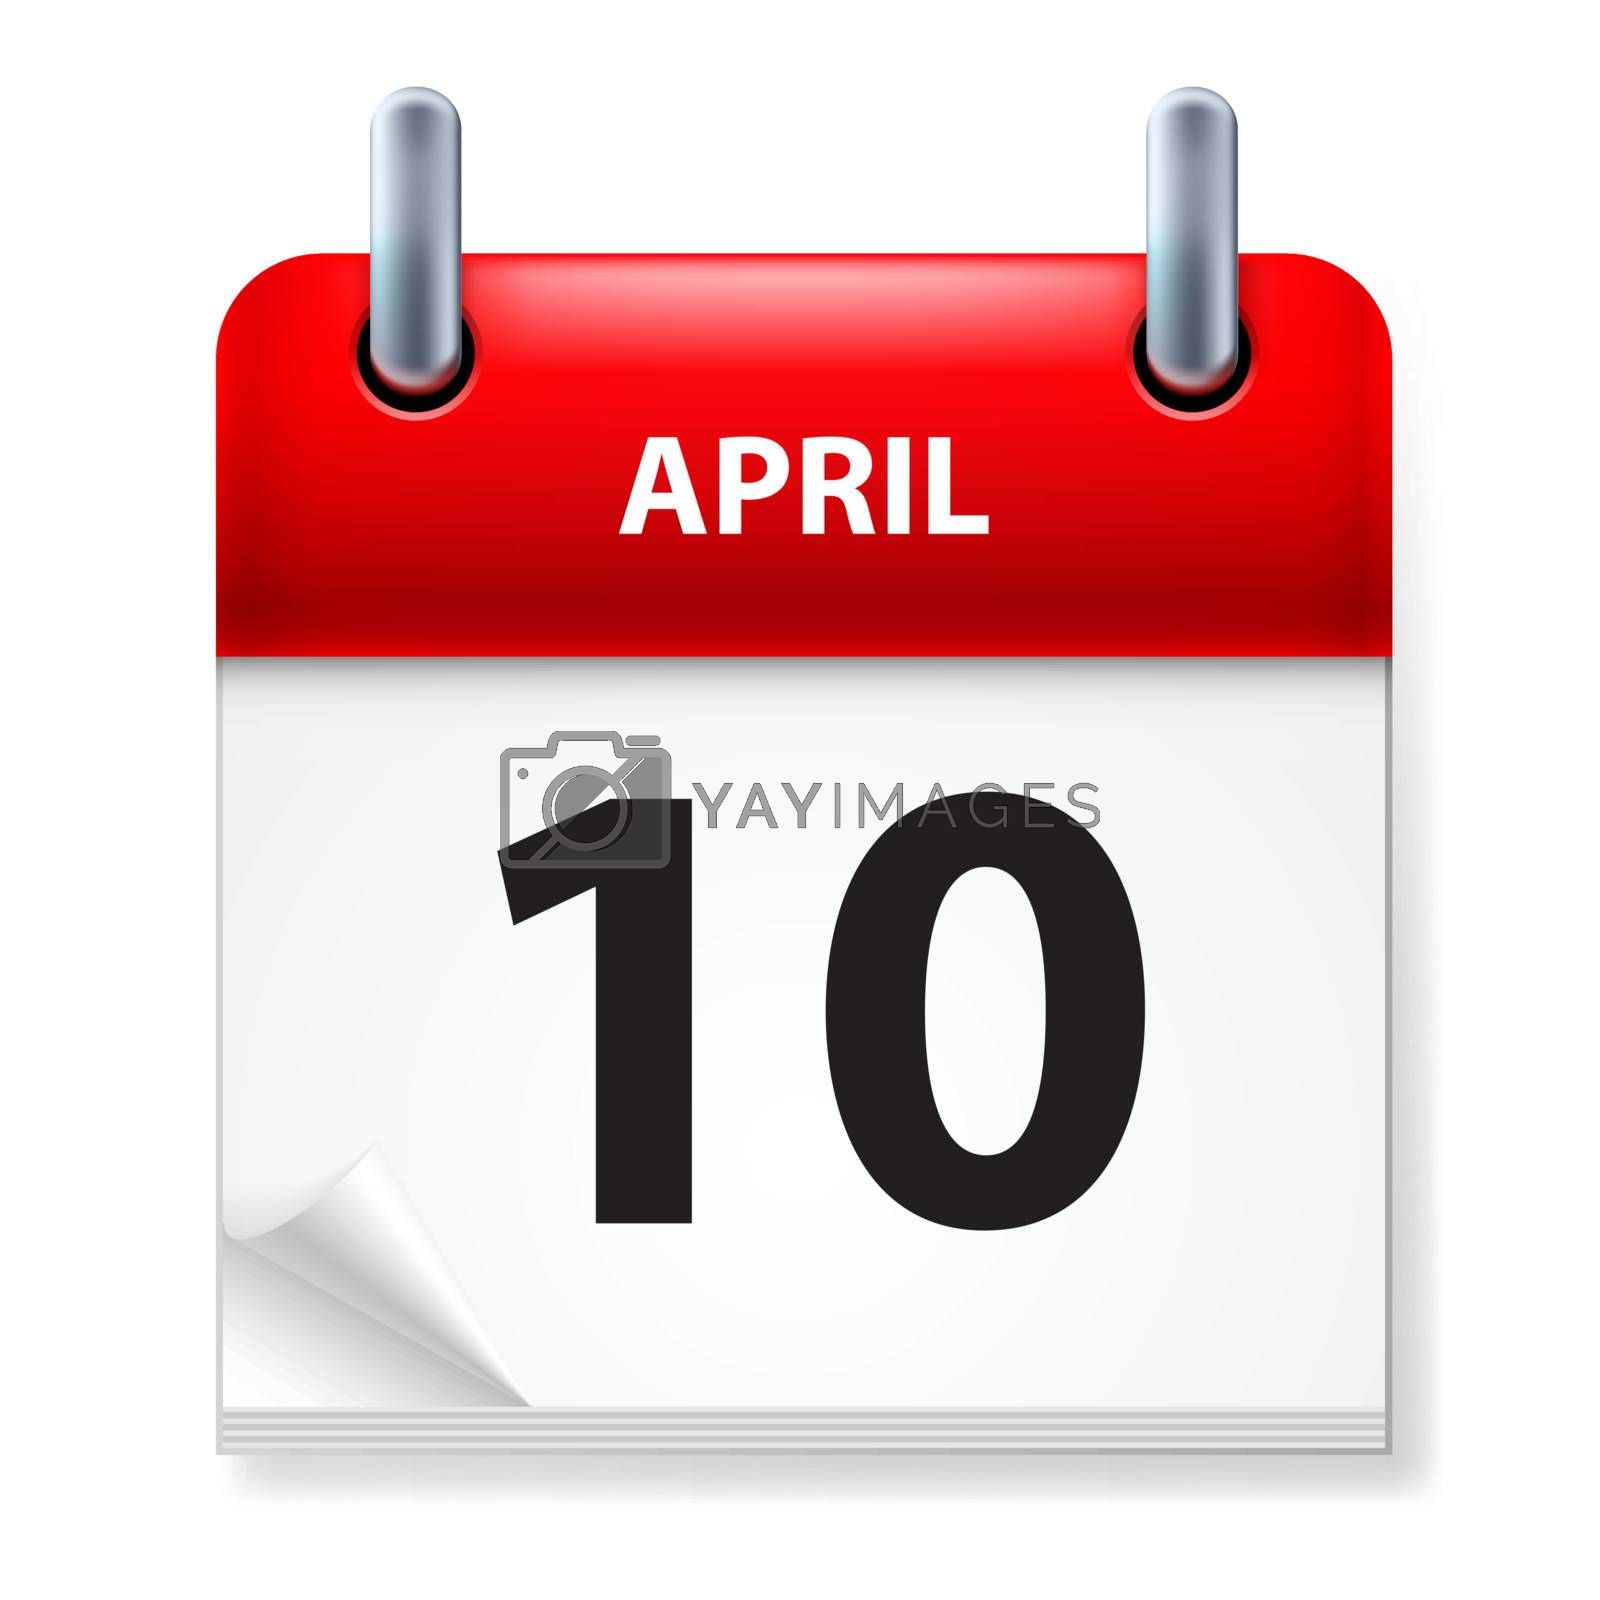 Tenth in April Calendar icon on white background